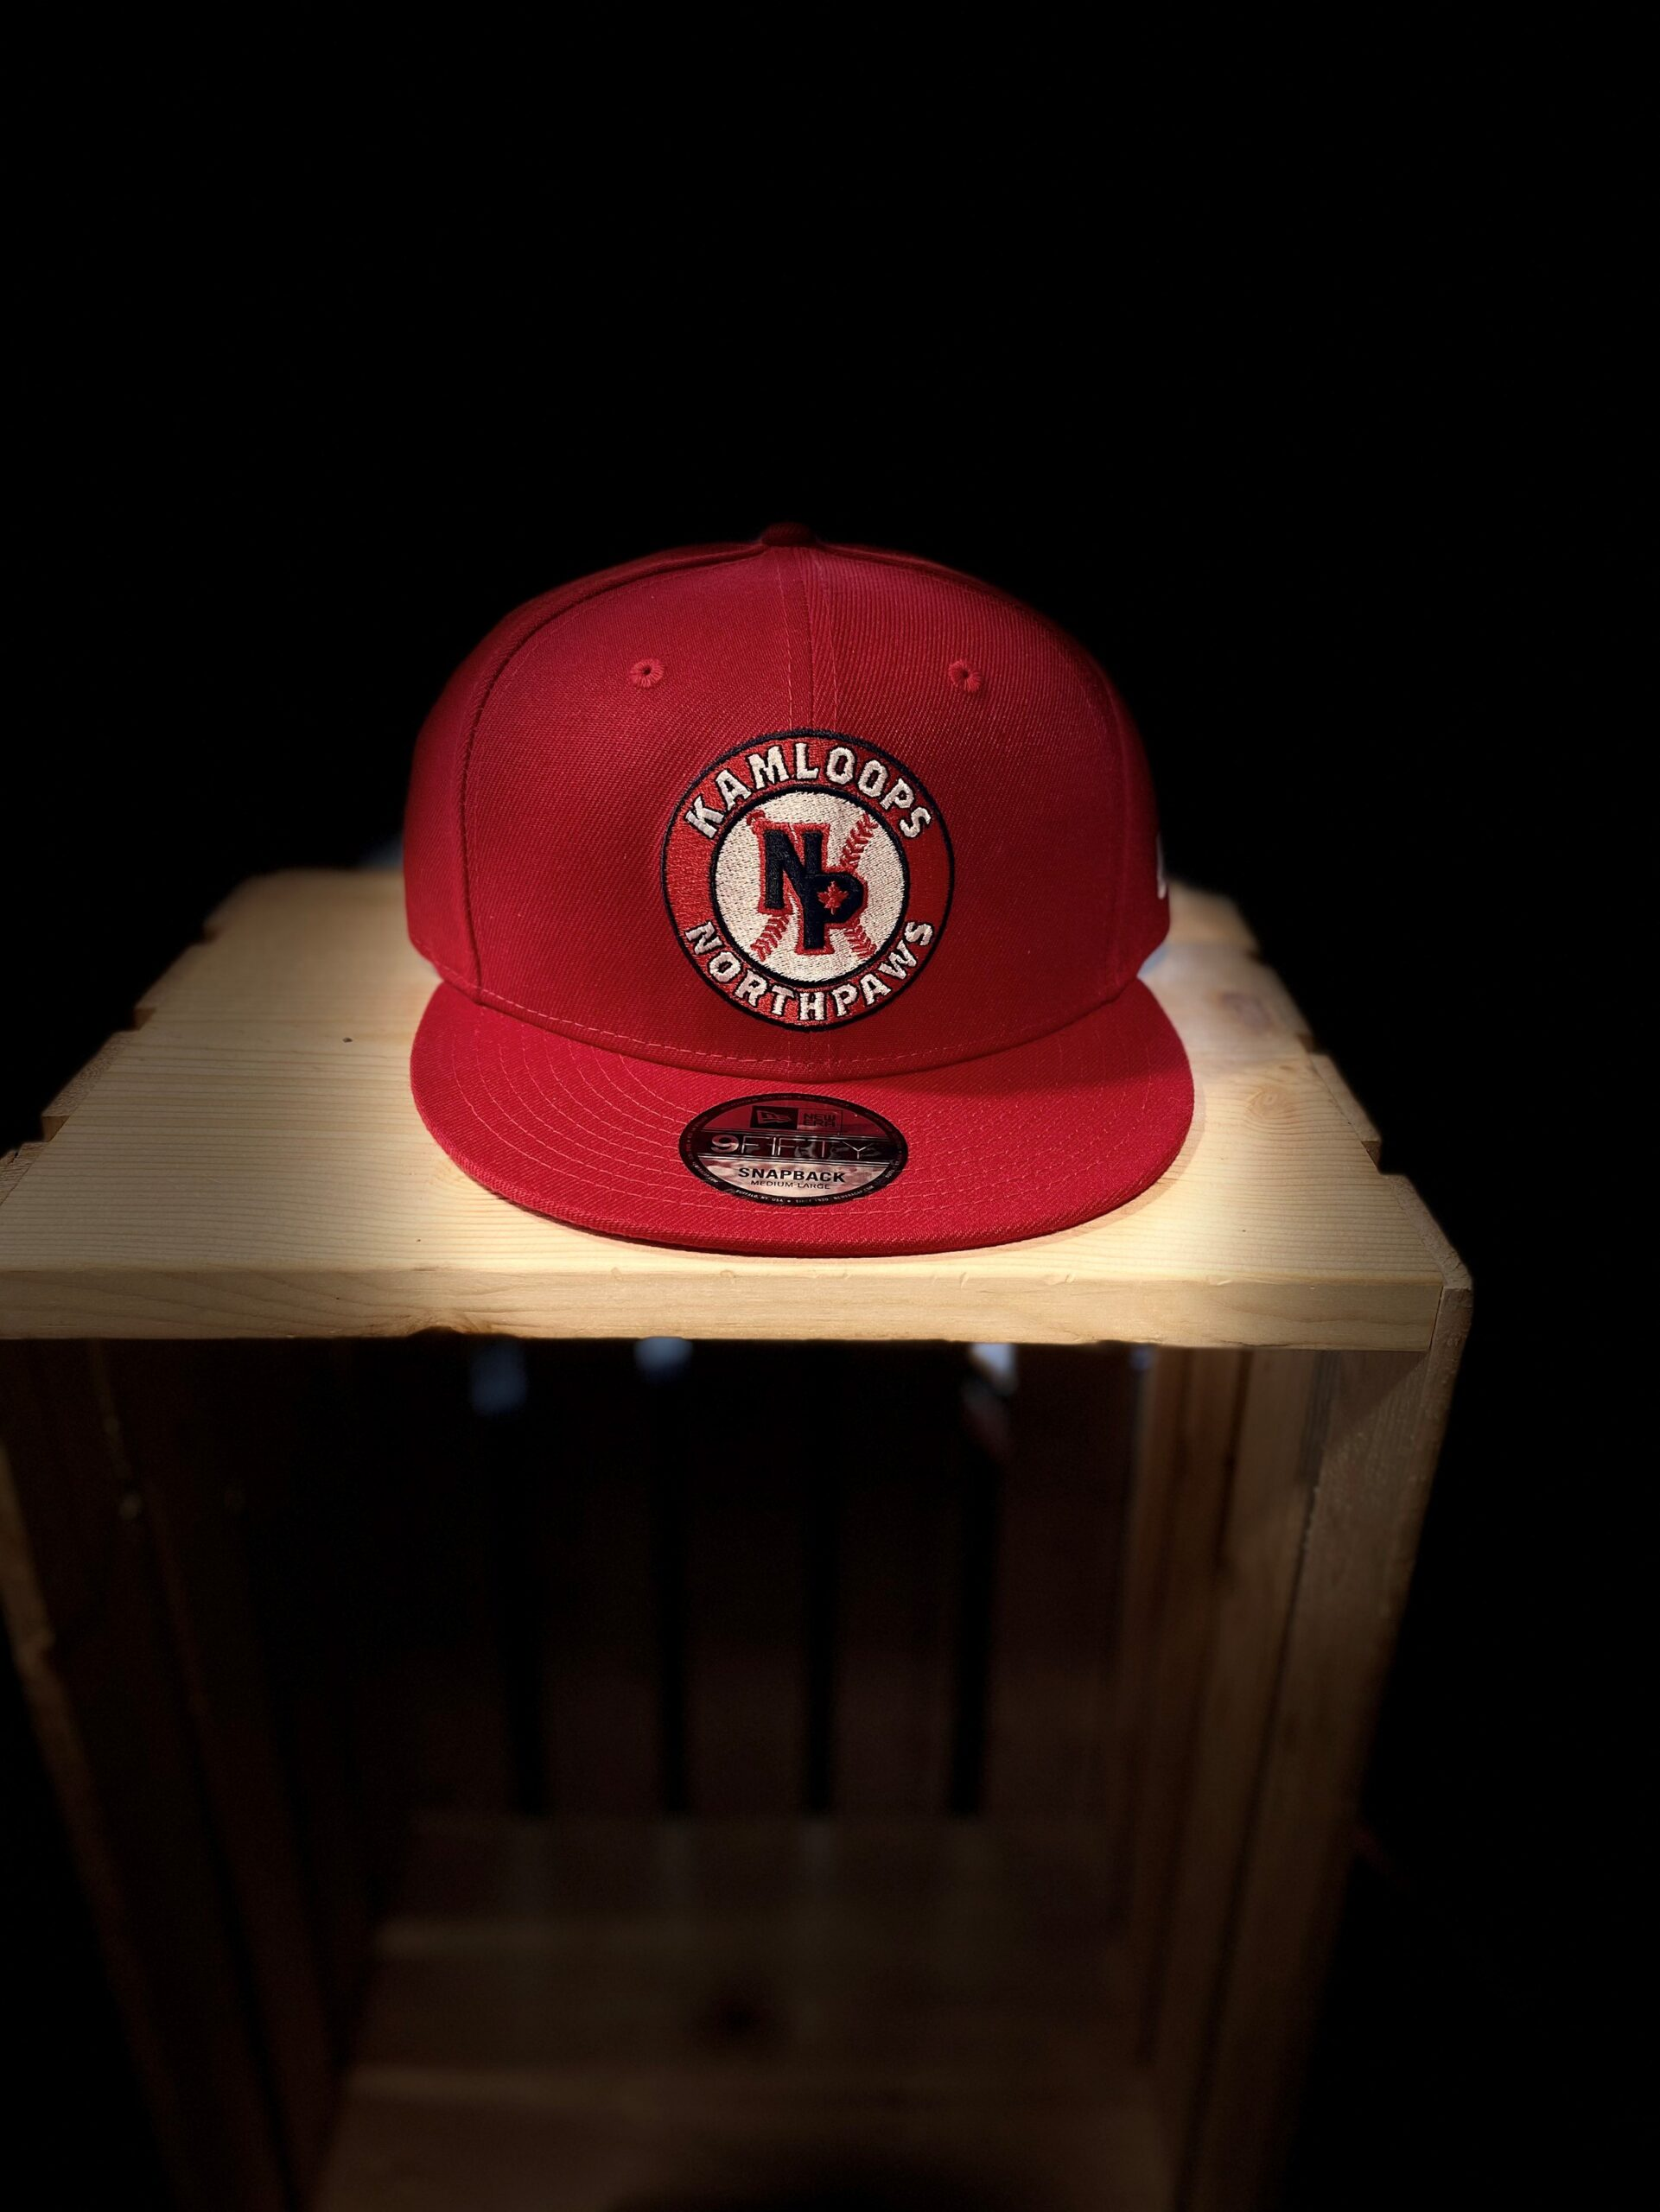 NorthPaws New Era 9FIFTY Snapback in Red